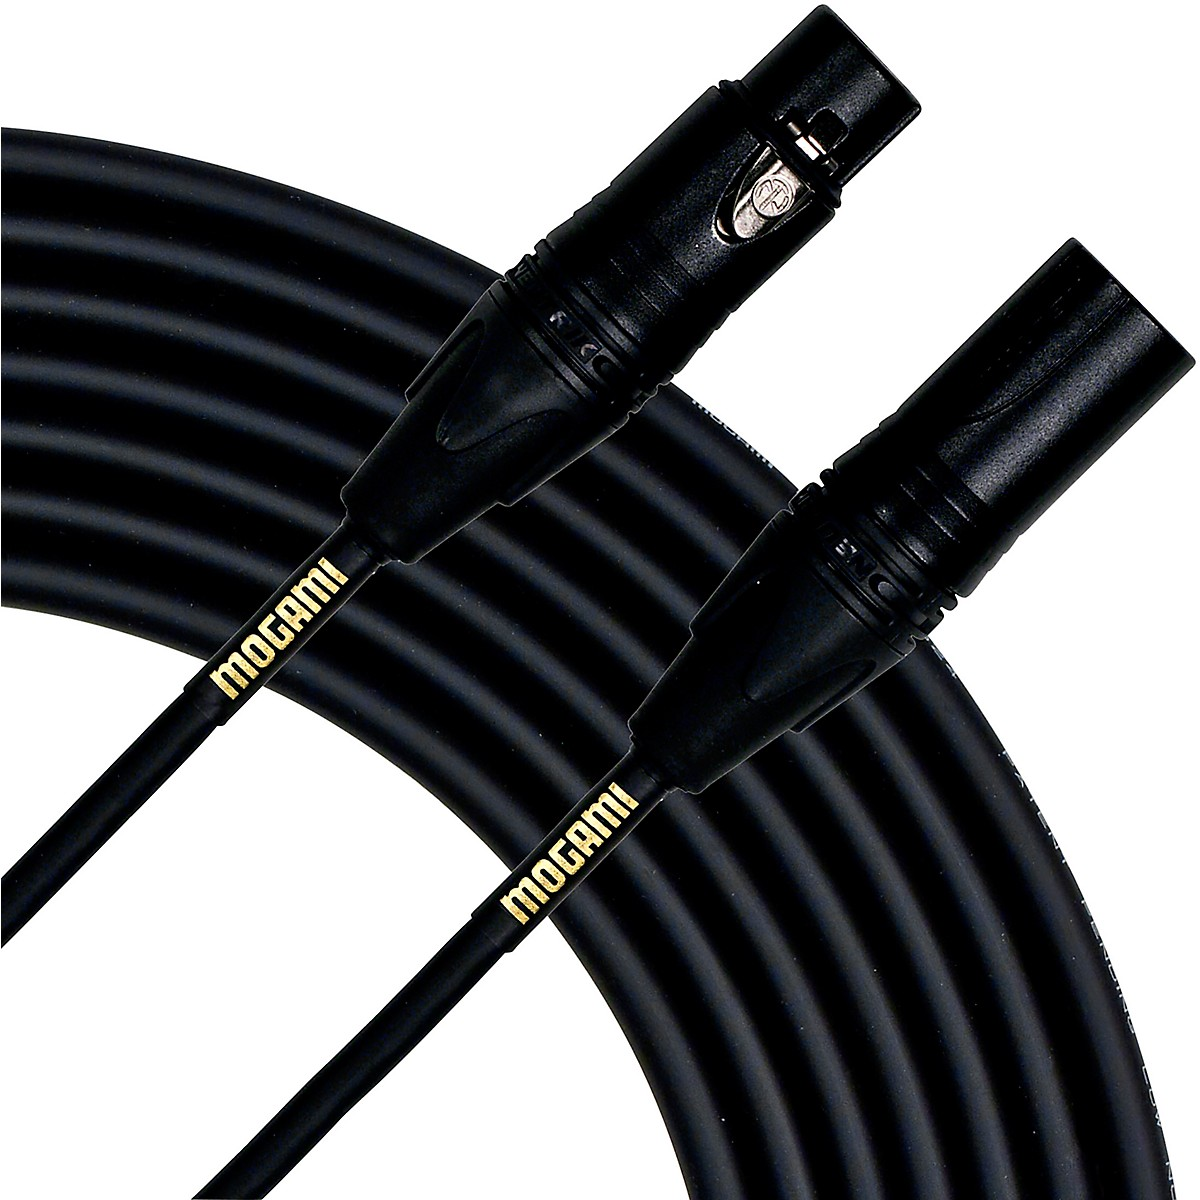 Mogami Gold Studio Microphone Cable - 10ft.